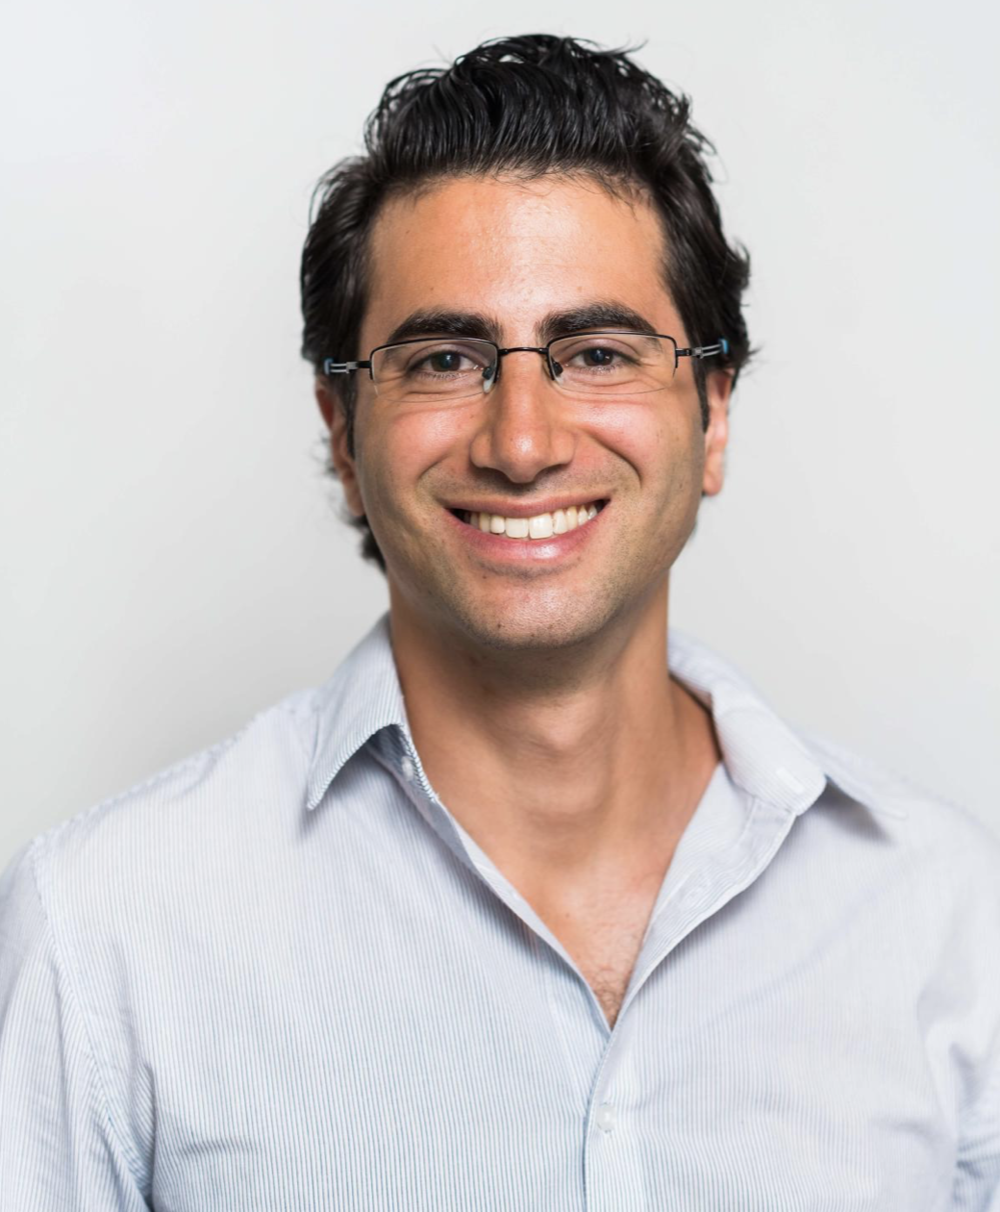 MAHER DAMAK, PH.D - Co-Founder & CEO, Infinite Cooling